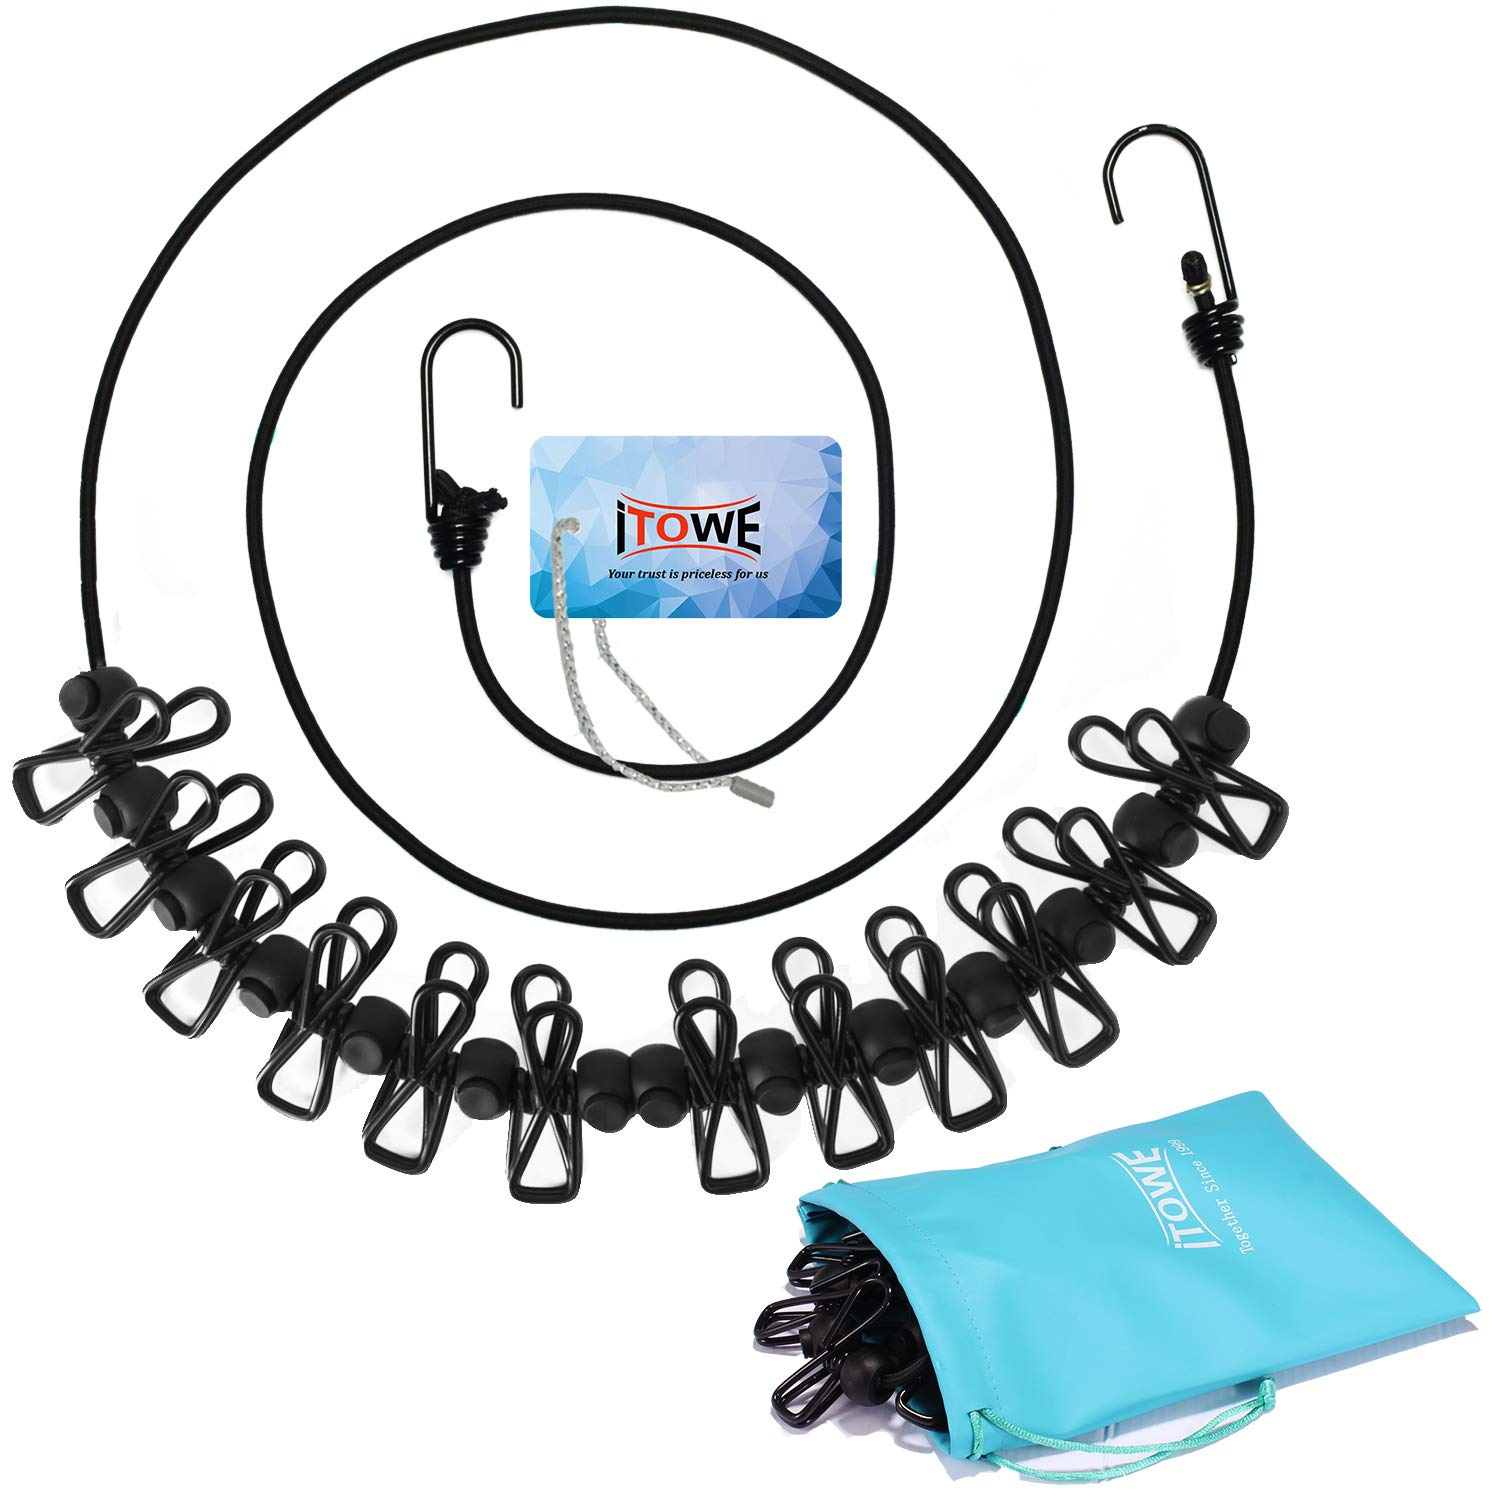 Clothesline with 12 Pins, Portable Travel Clothesline Adjustable Windproof Clothesline Stainless Wire Pin, Clothes Metal Clips for Laundry Drying Outdoor and Indoor Use, Art Display with Portable Bag ITOWE